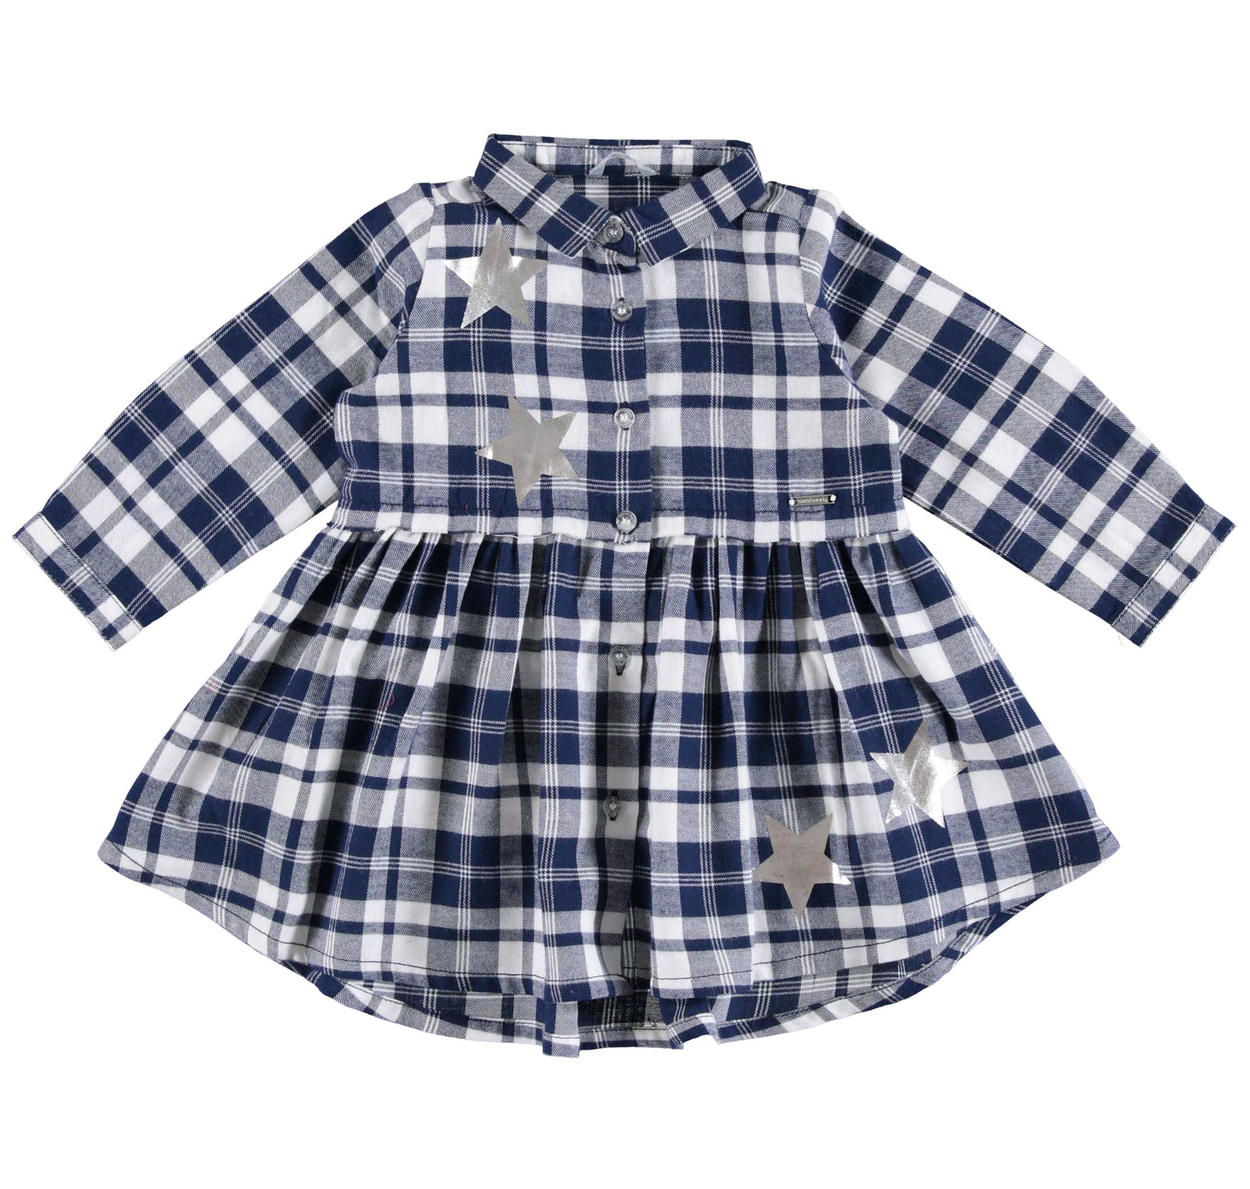 d6c464af Sarabanda 100% cotton checked shirt dress for girls from 6 months to 7  years NAVY